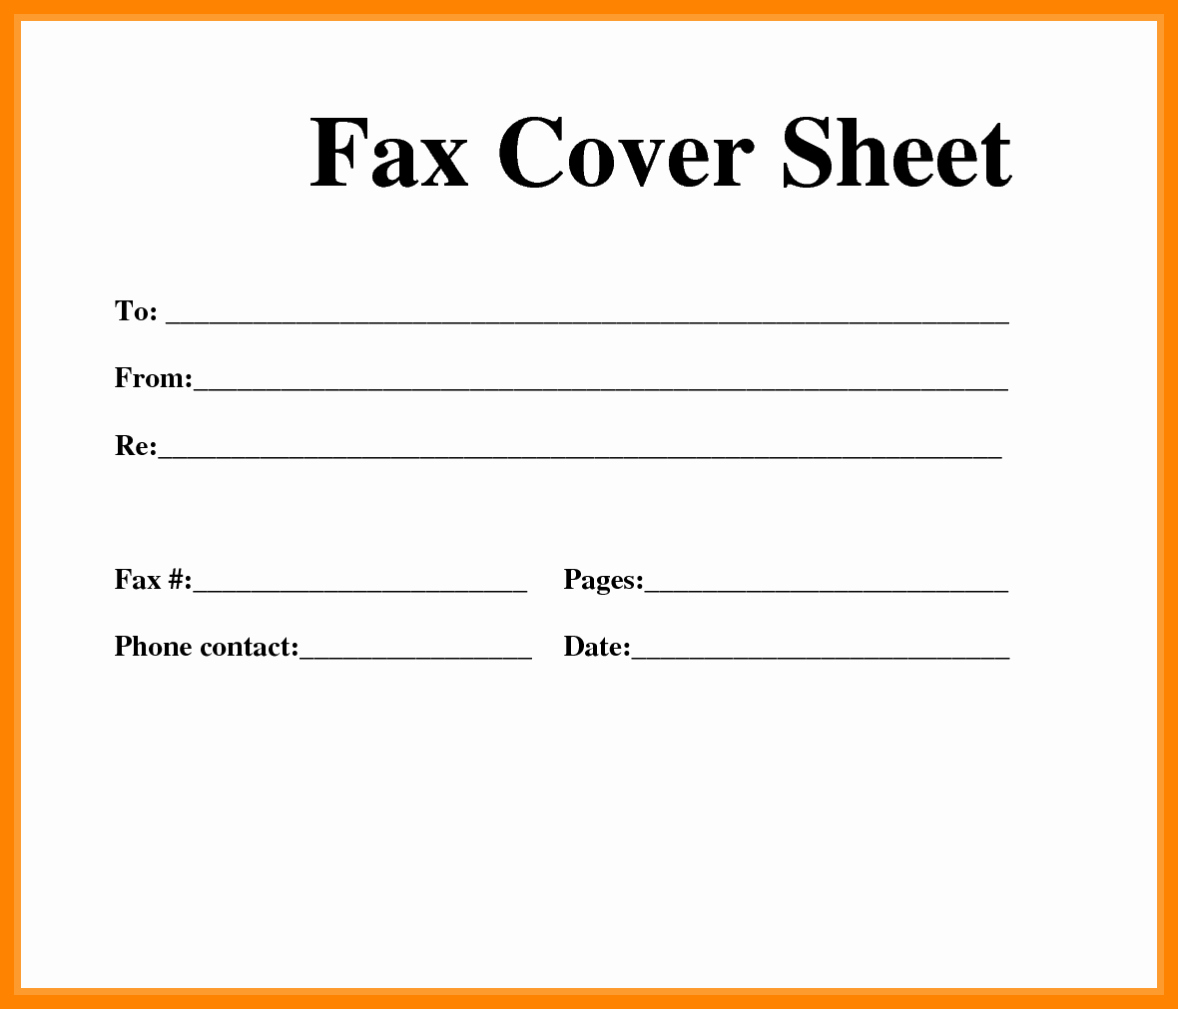 Sample Fax Cover Sheets Awesome Basic Fax Cover Sheet